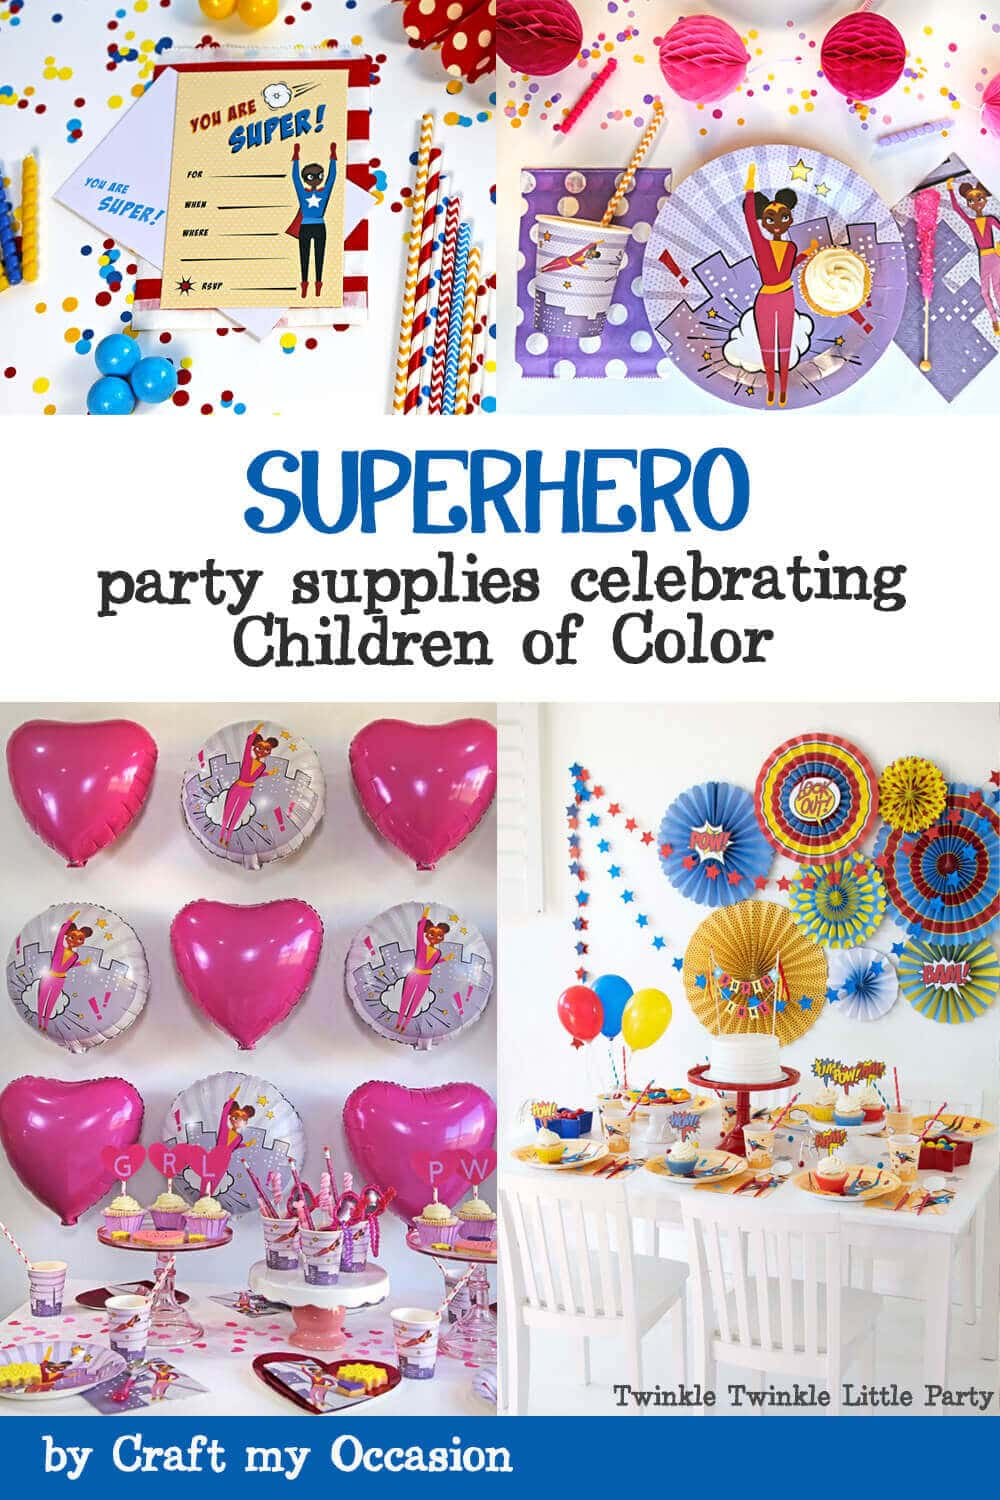 Superhero inclusive party supplies celebrating children of color